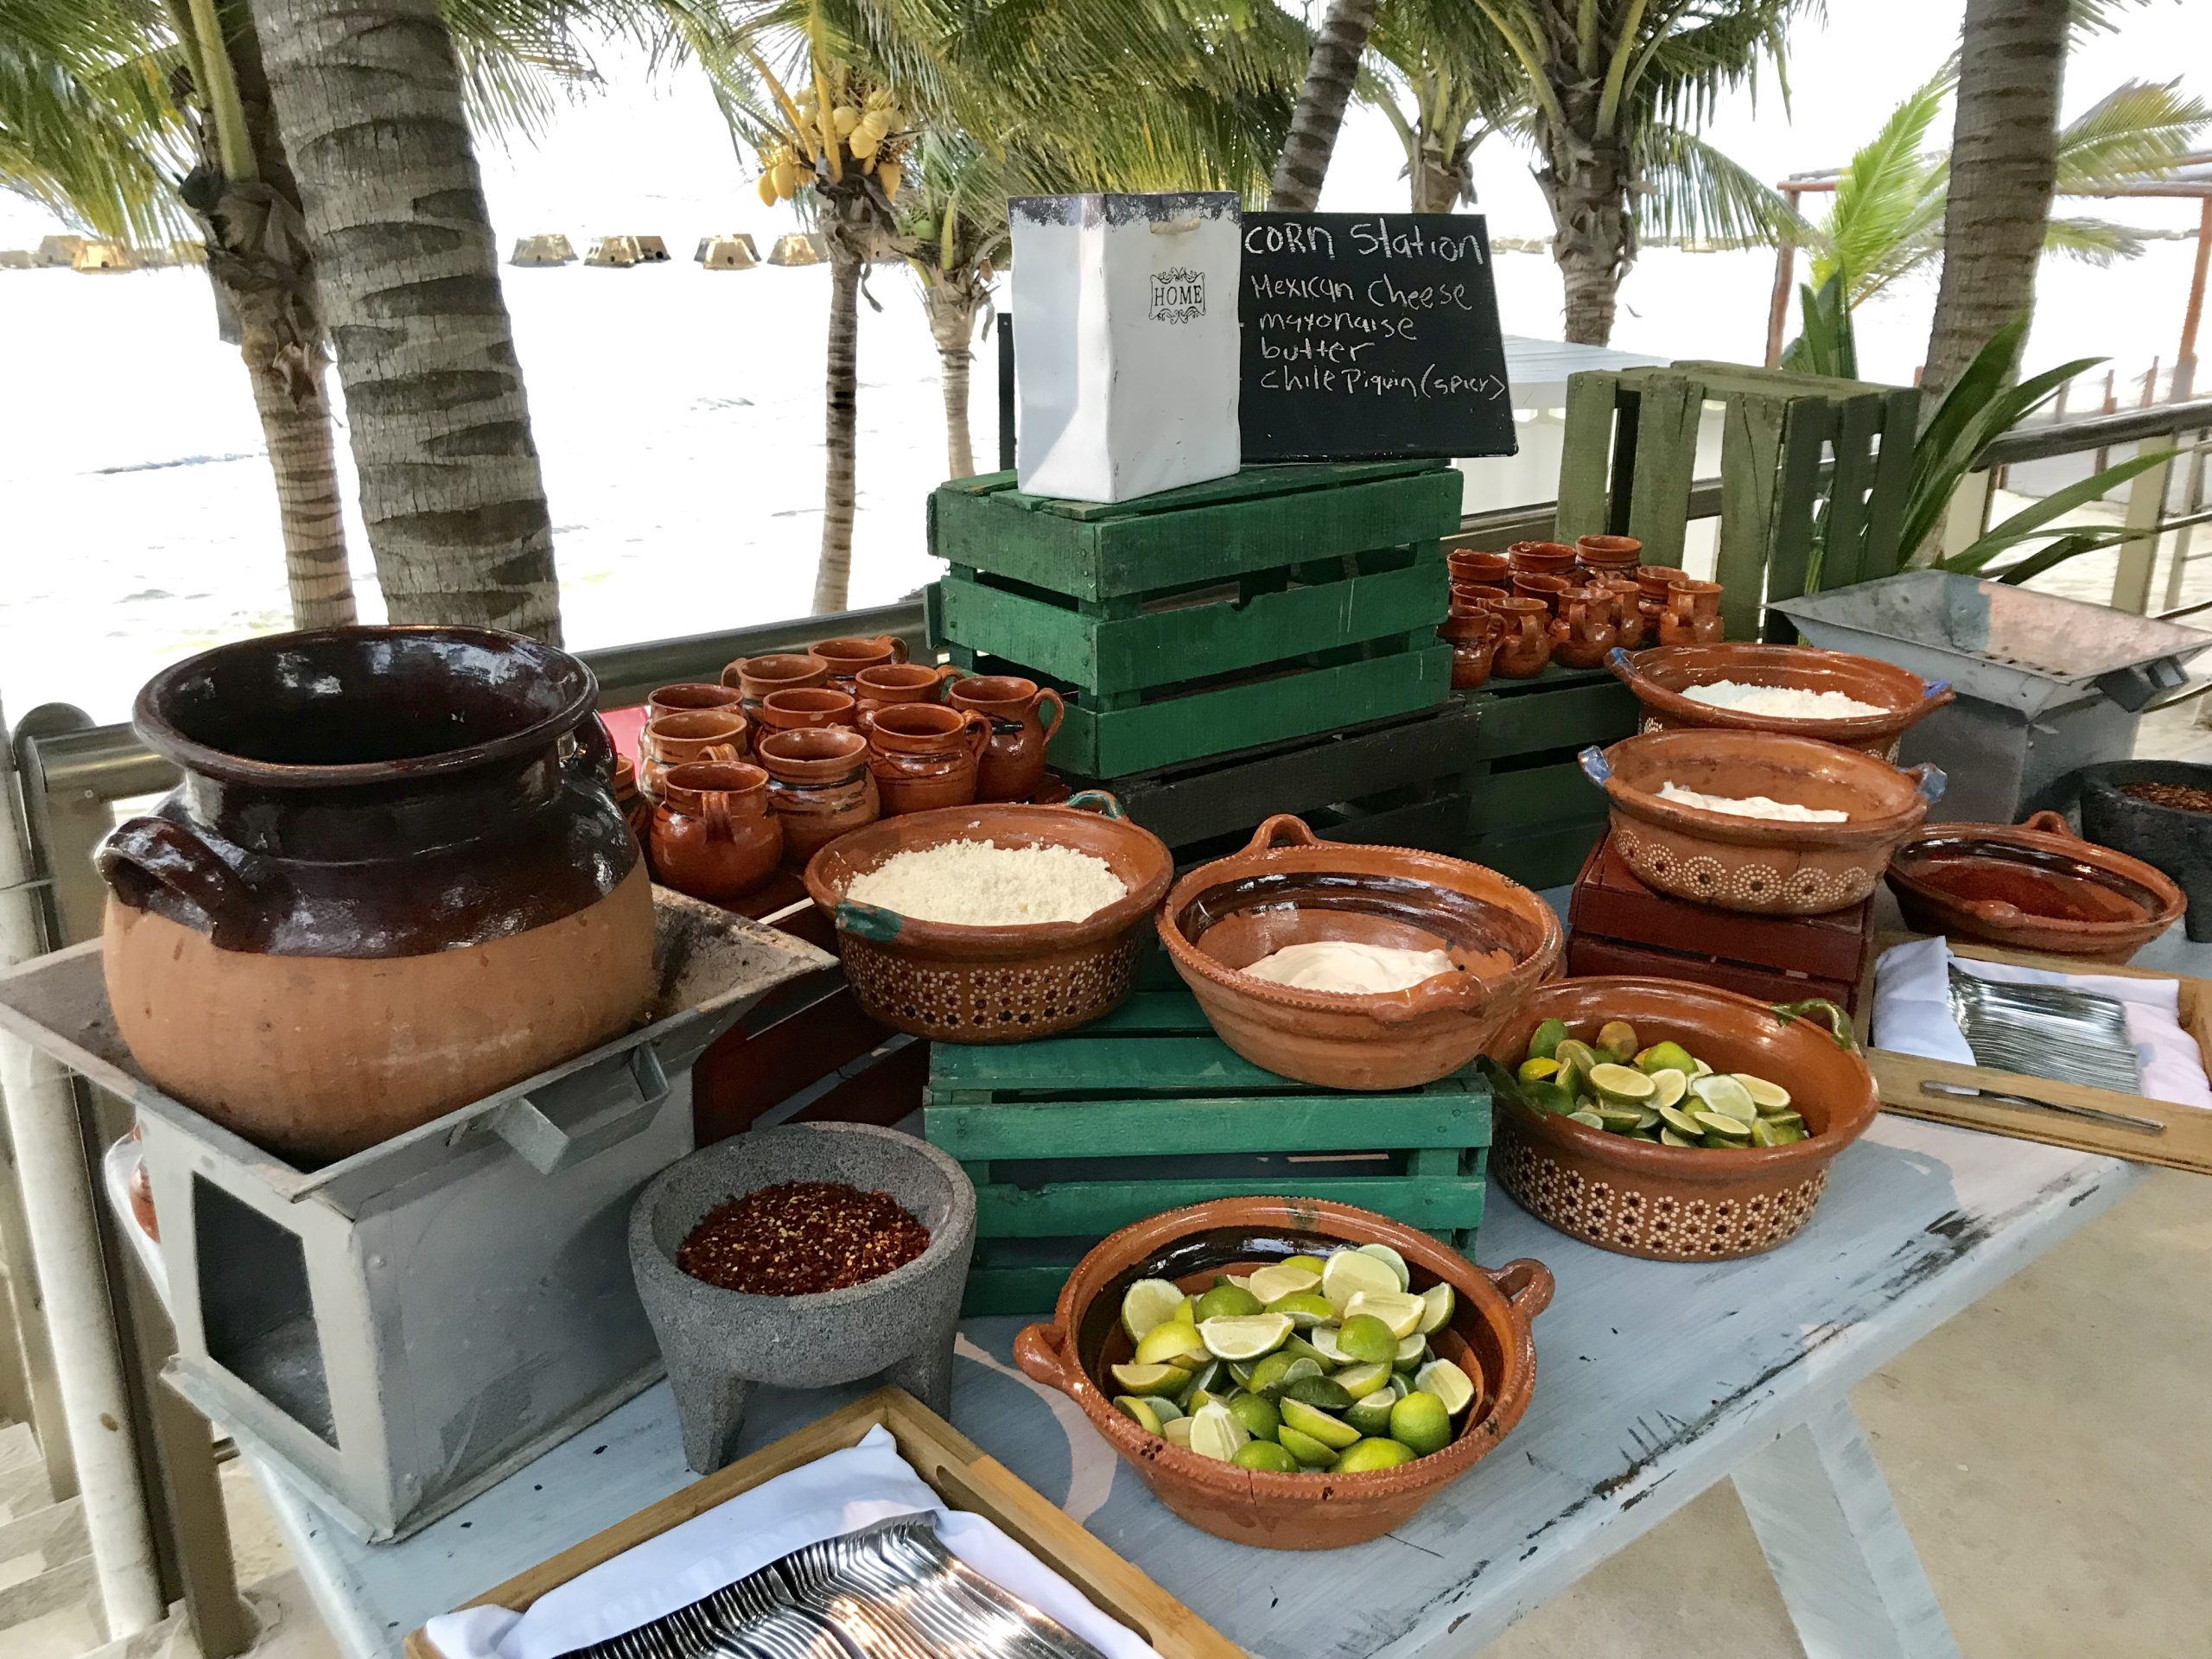 corn station prices for a destination wedding in generations riviera maya cancun by latin asia one stop solution